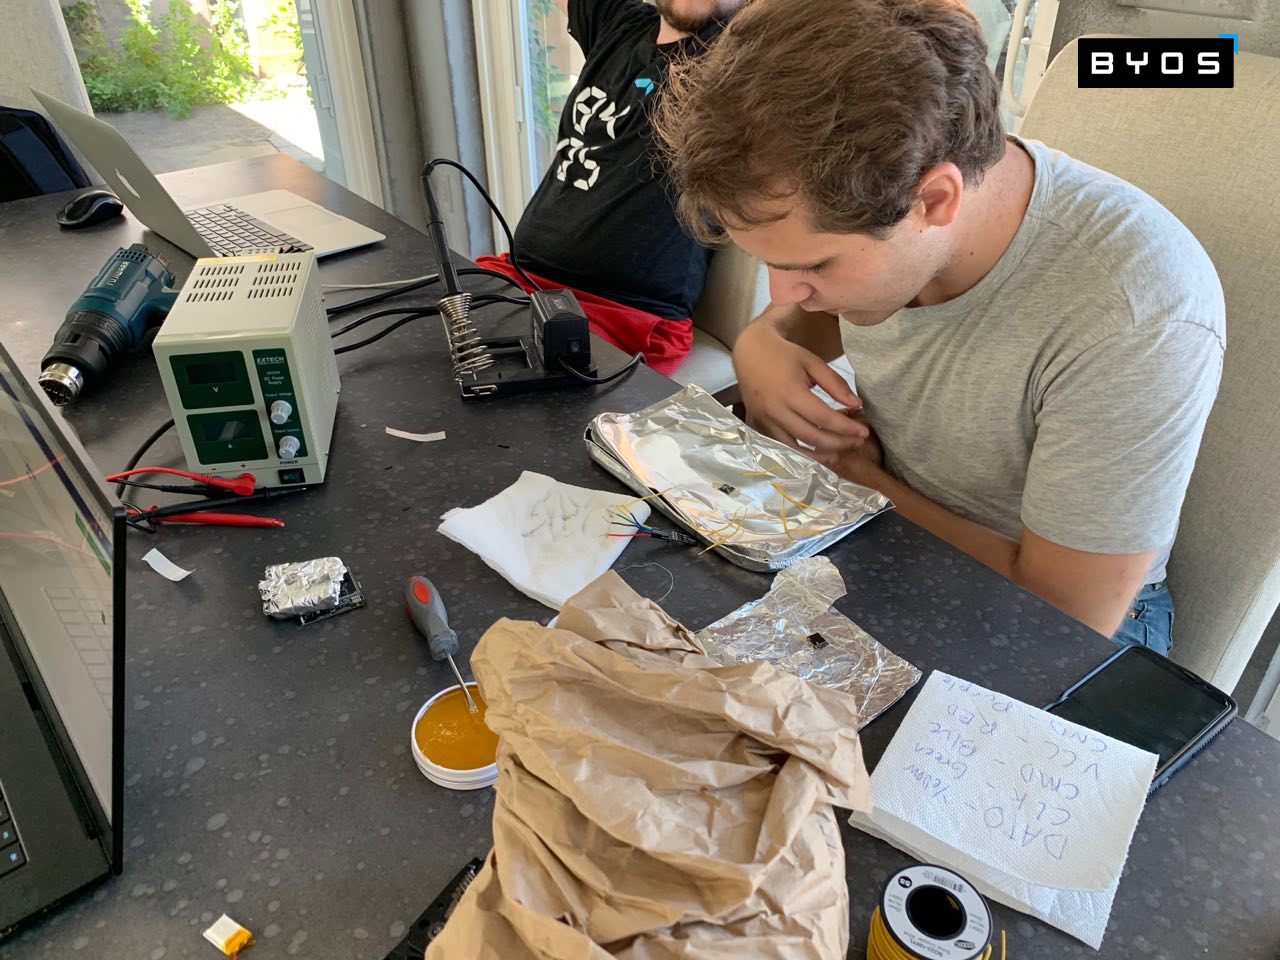 Max unsoldered the eMMC from the Byos Portable Secure Gateway Hardware board, to try to access its raw information. He is seen here carefully soldering wires directly to the FBGA.